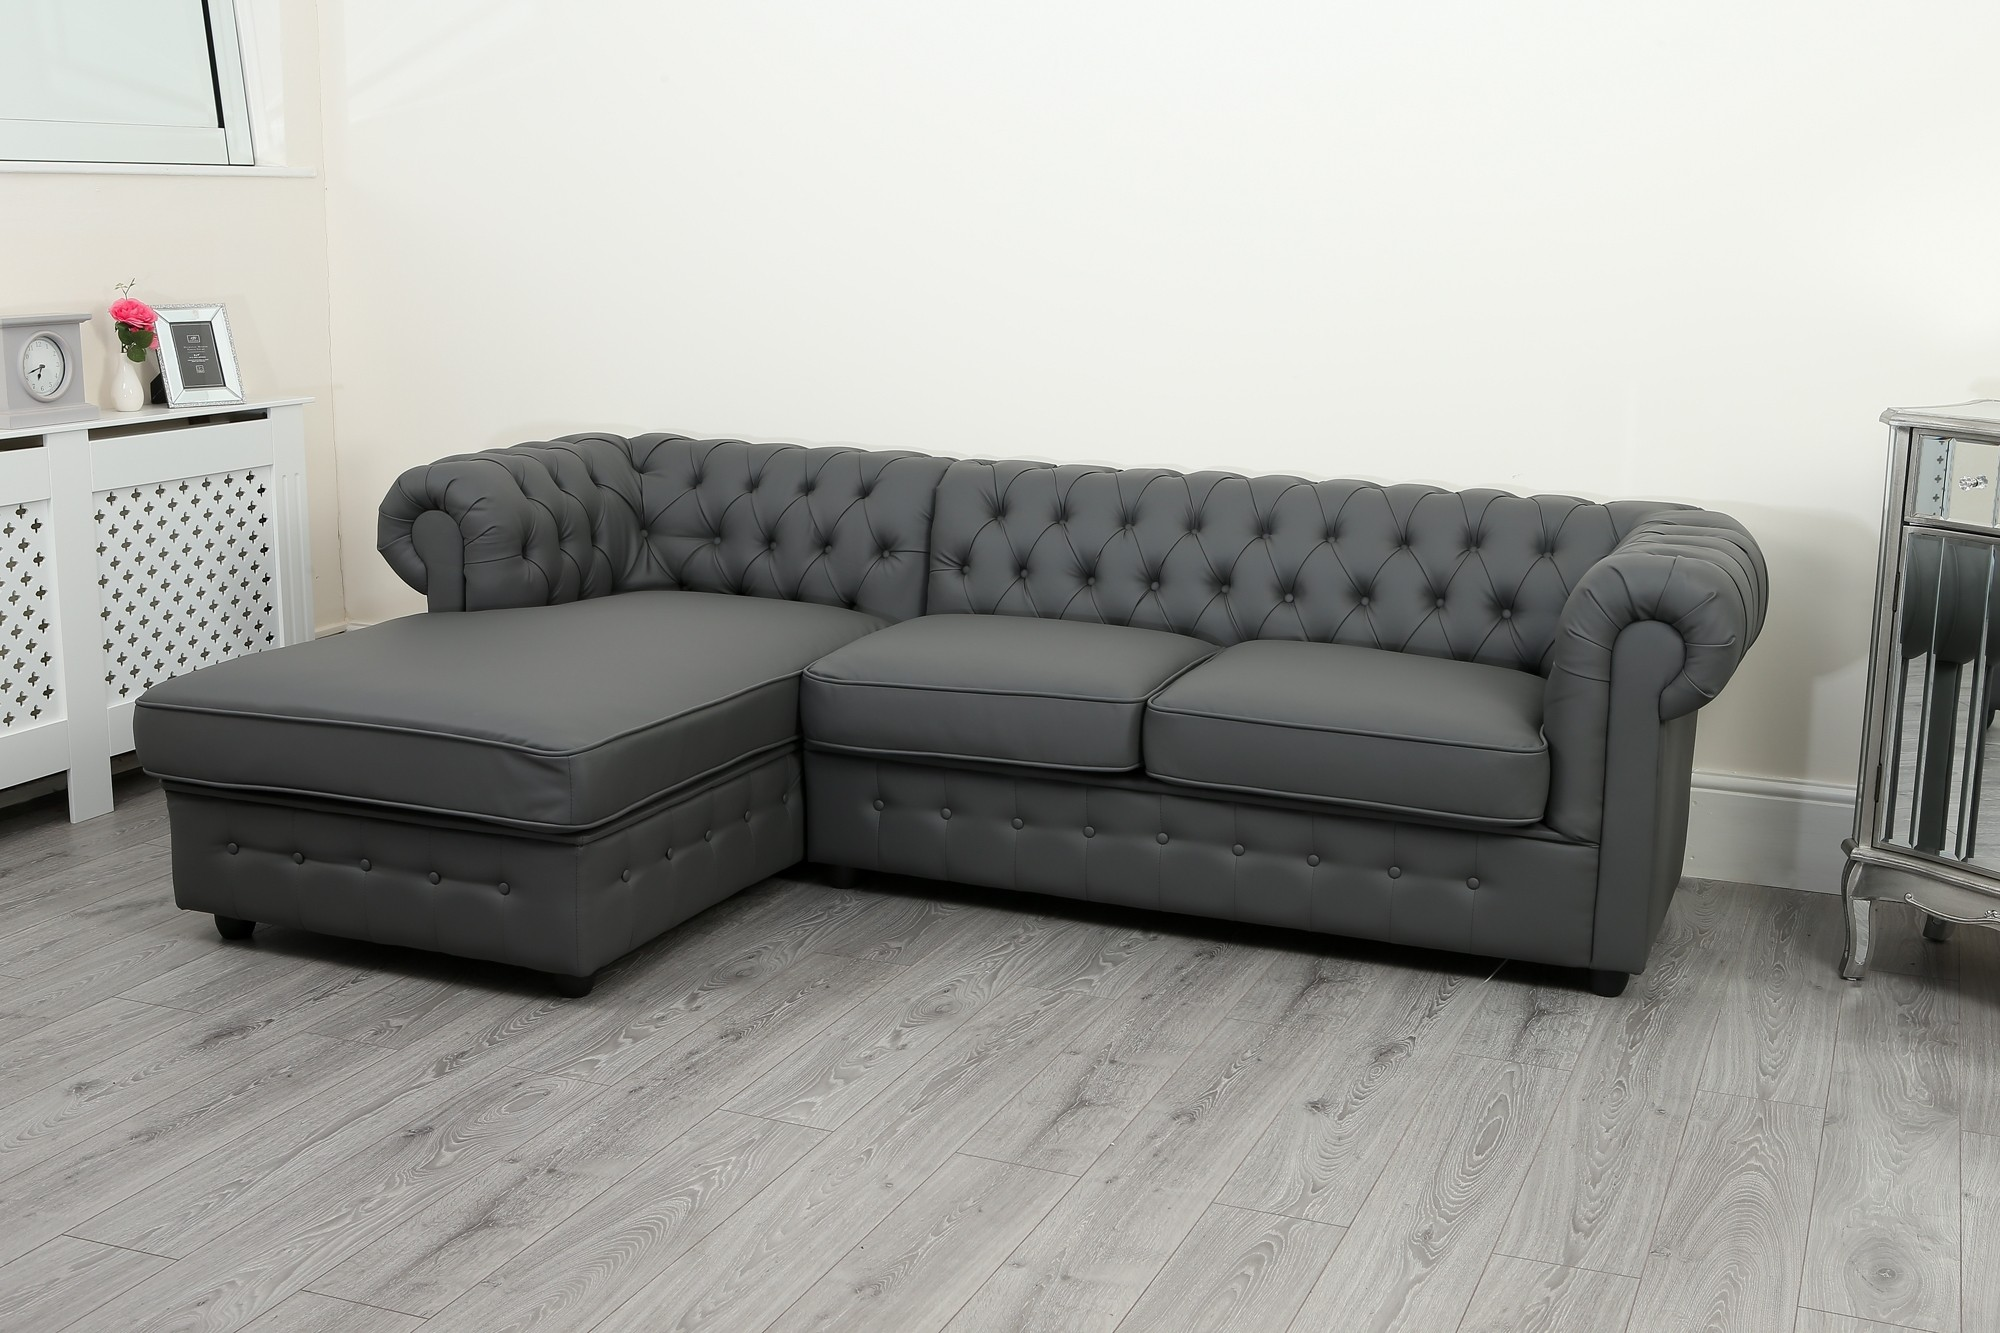 Empire Chesterfield Corner Sofa In Grey Pu Leather Abreo